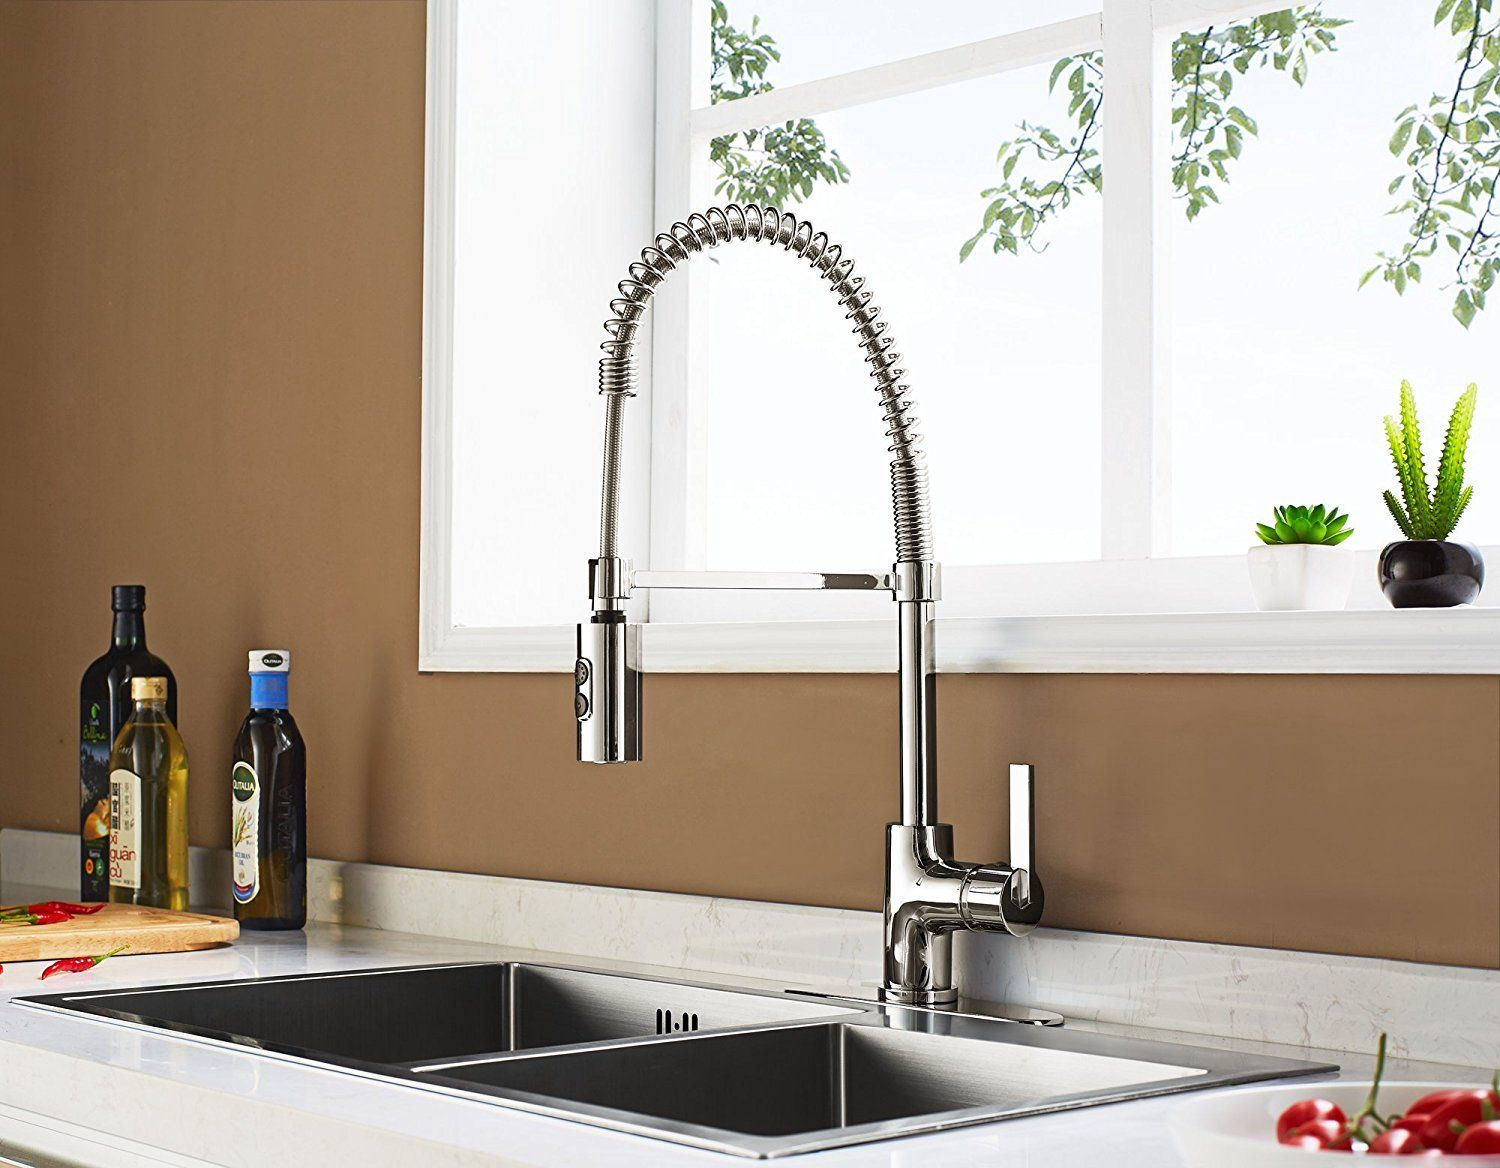 Best Modern Kitchen Faucets Top Picks And Comparison Chart 2021 Cheap Kitchen Faucets Modern Kitchen Faucet Kitchen Faucet